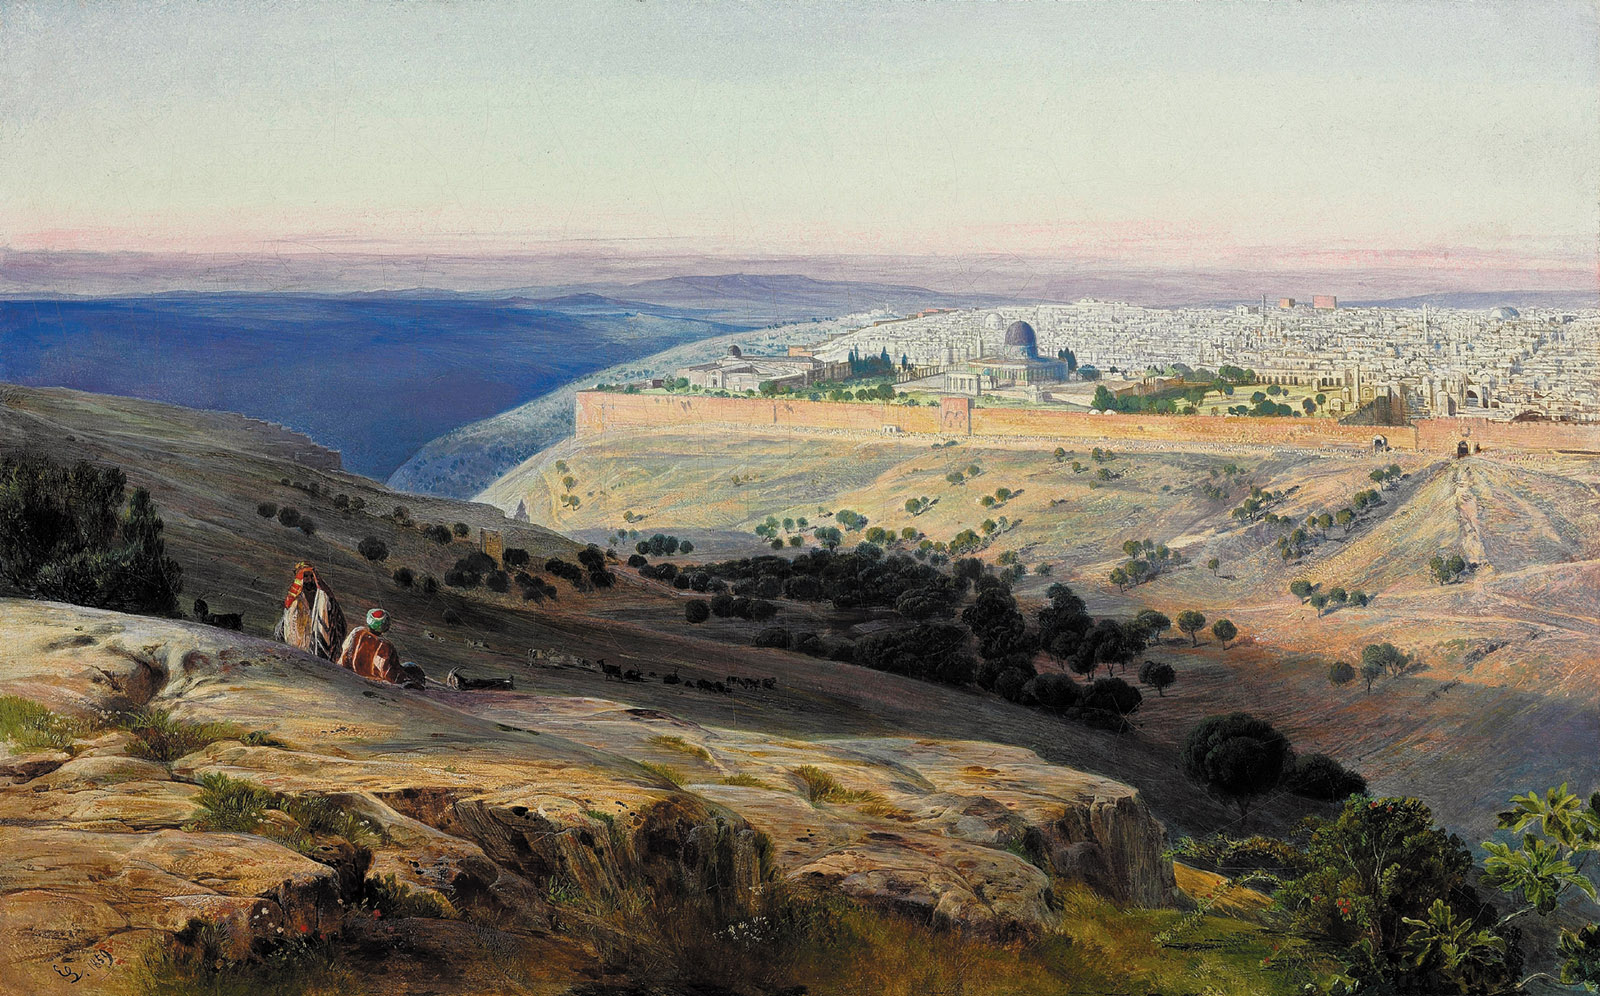 Jerusalem from the Mount of Olives, Sunrise, 1859 by